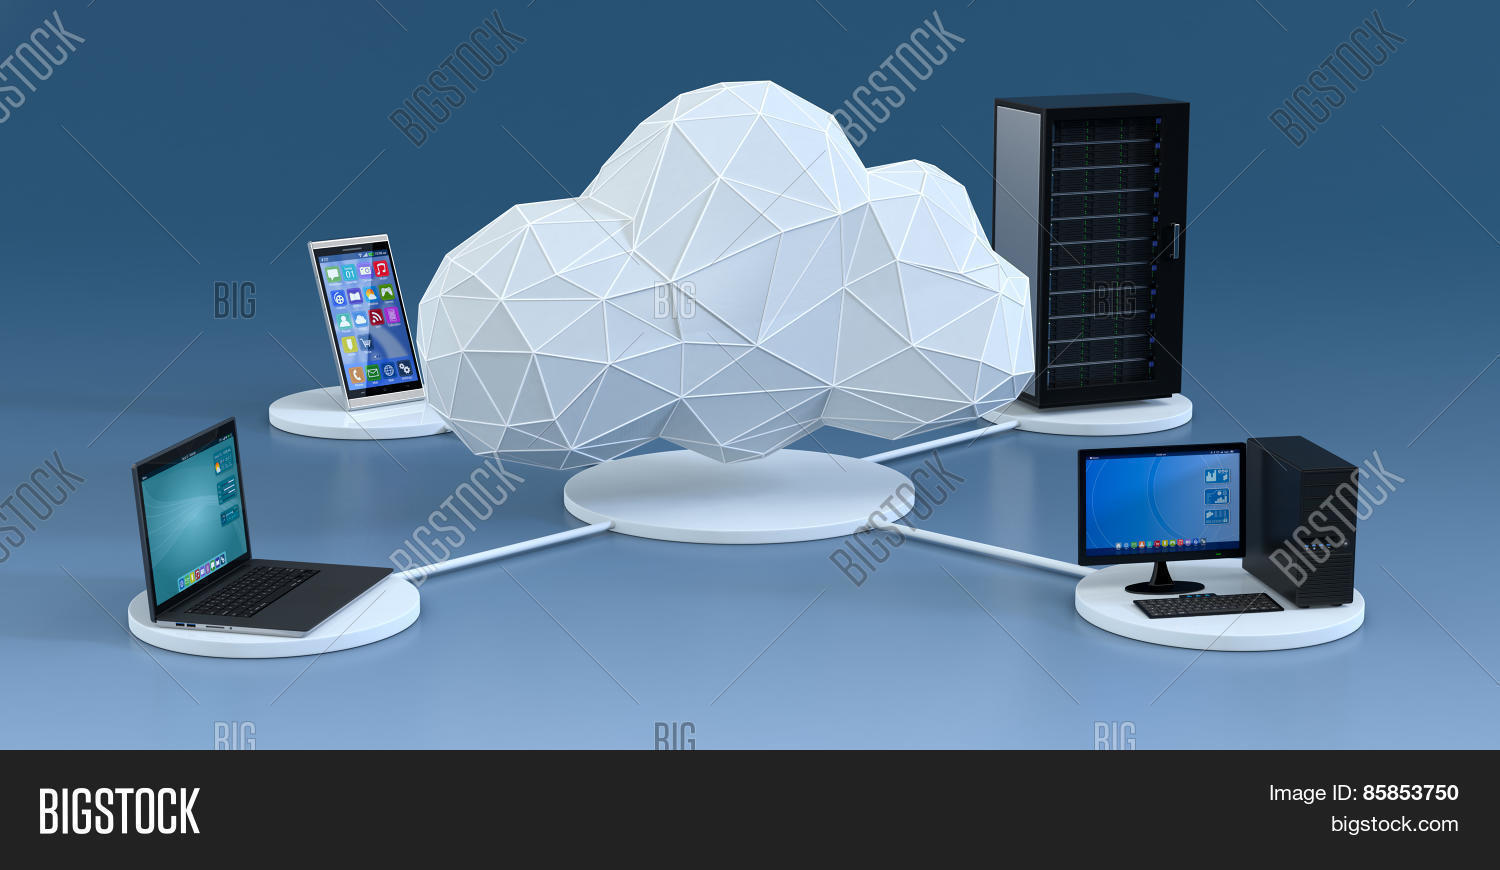 Concept Cloud Image & Photo (Free Trial) | Bigstock